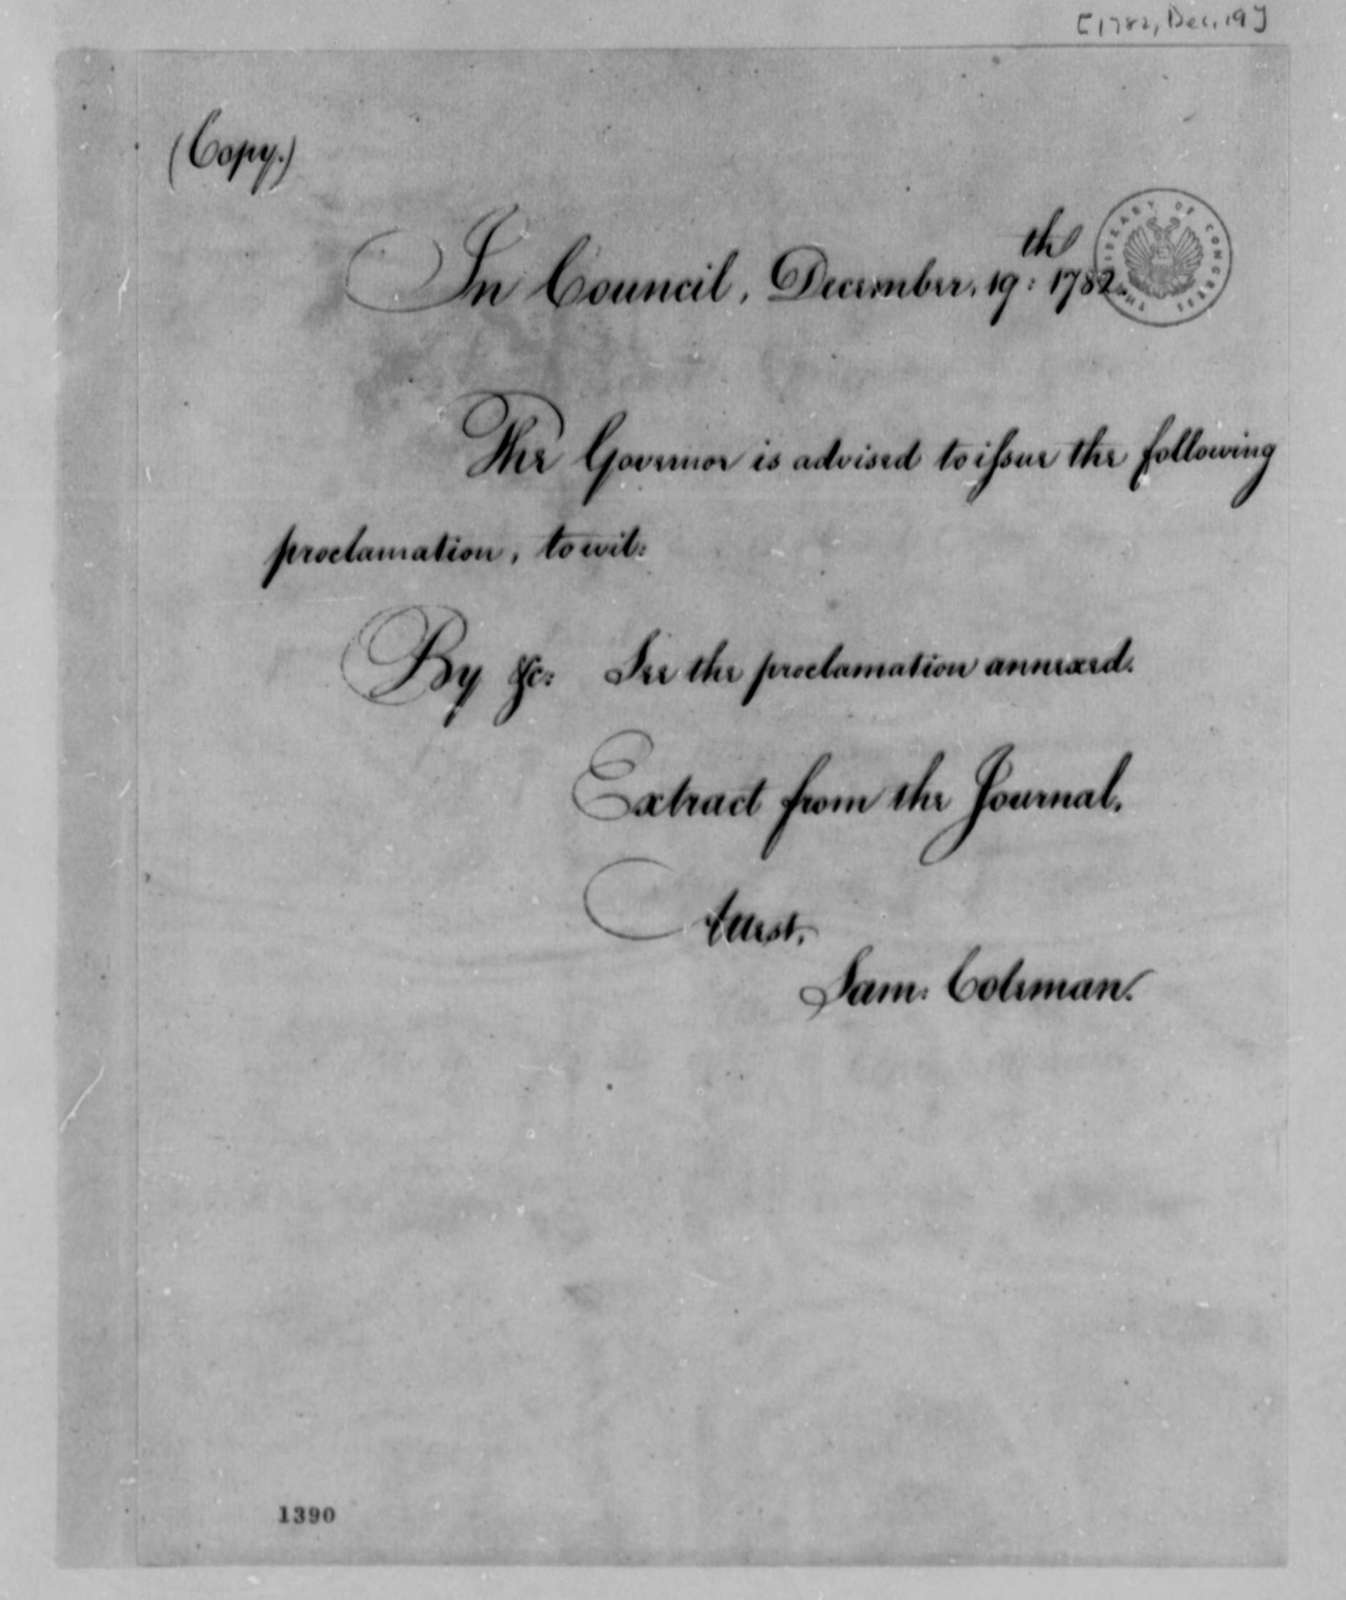 Virginia Council to Thomas Jefferson, December 19, 1782, Cover Letter Sent with Proclamation; with Copy